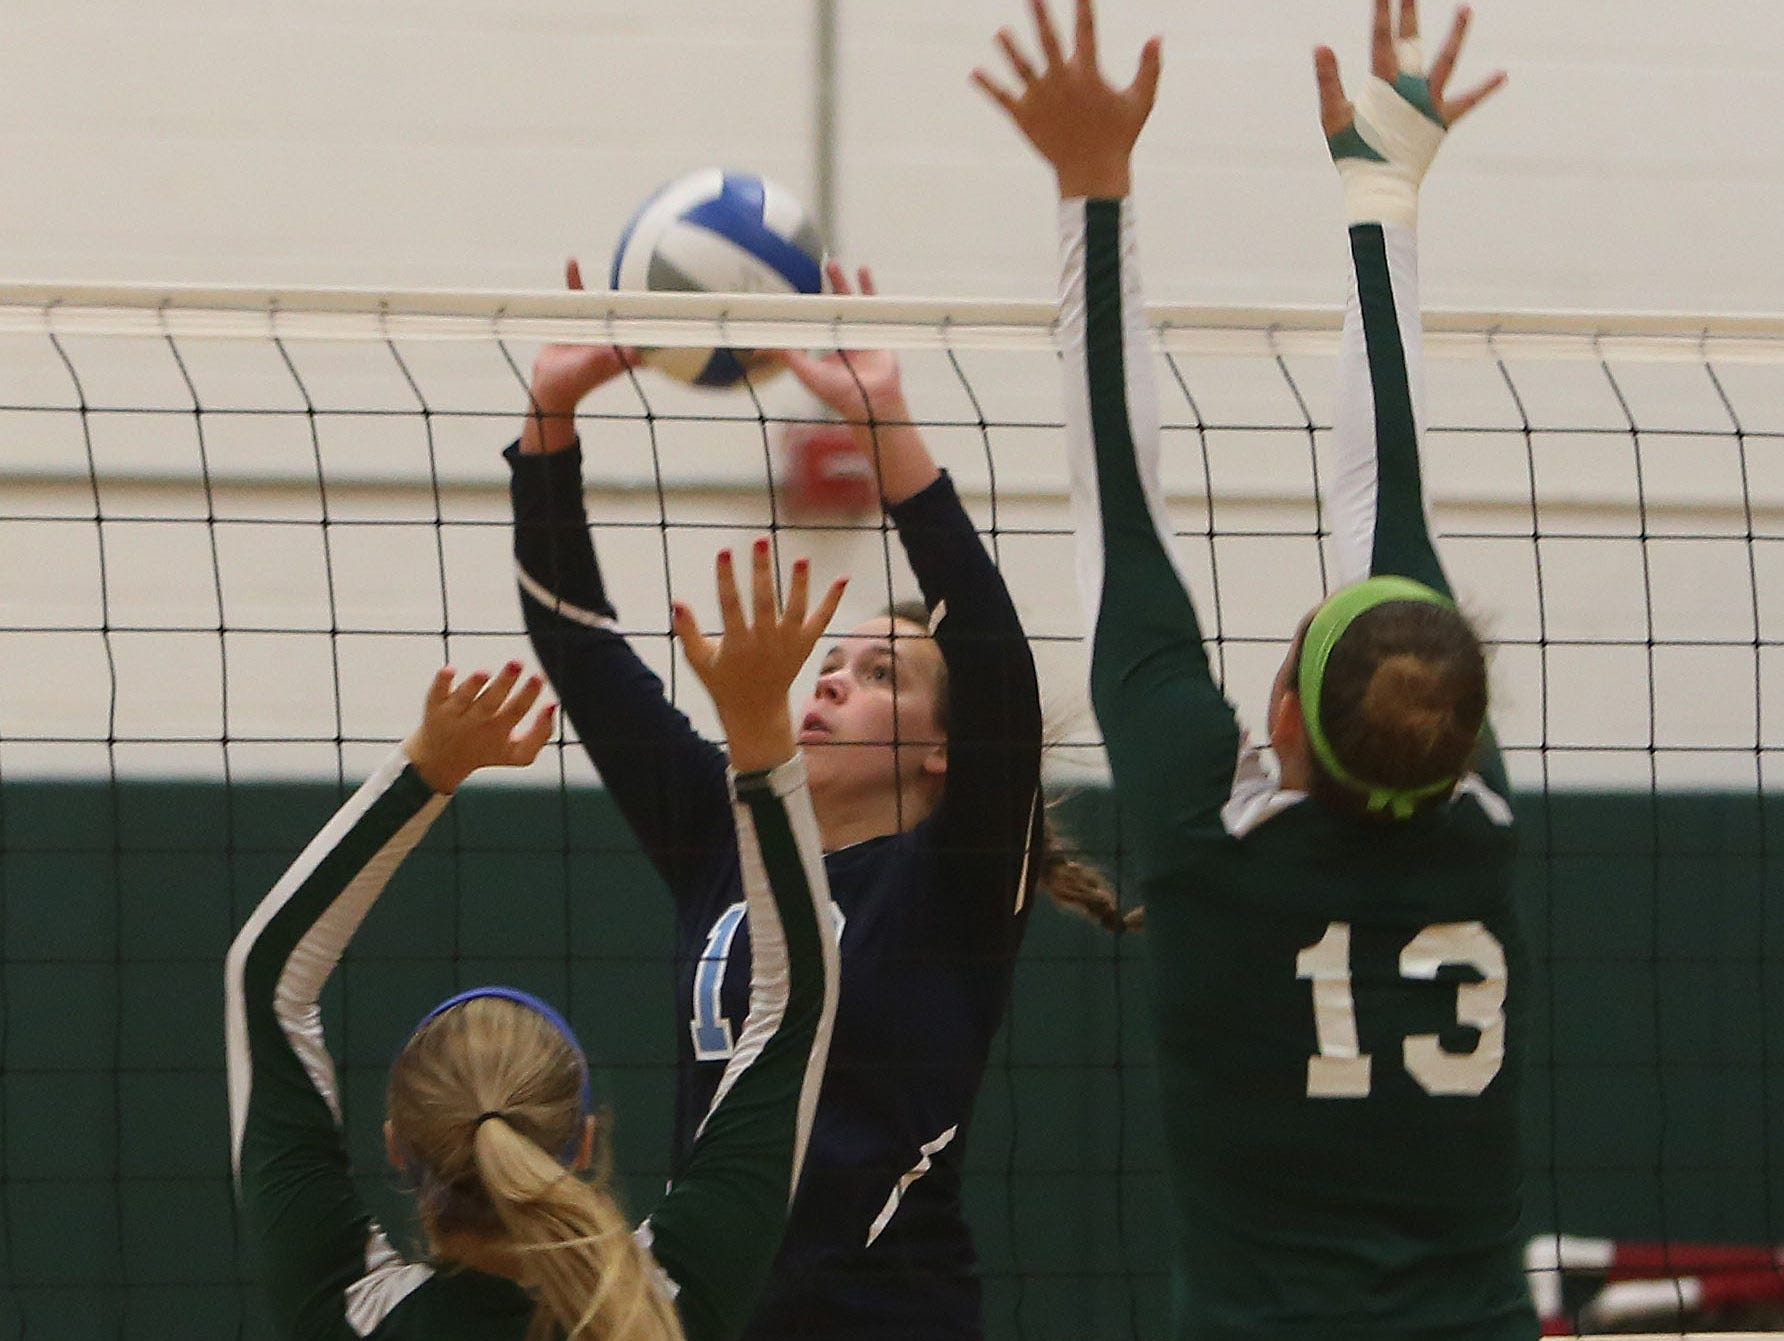 Westlake's Laine Peterson (13) puts a shot over Pleasantville's Chloe Violette (5) and Brianna Tucci (13) during volleyball action at Pleasantville High School Sept. 30, 2015.